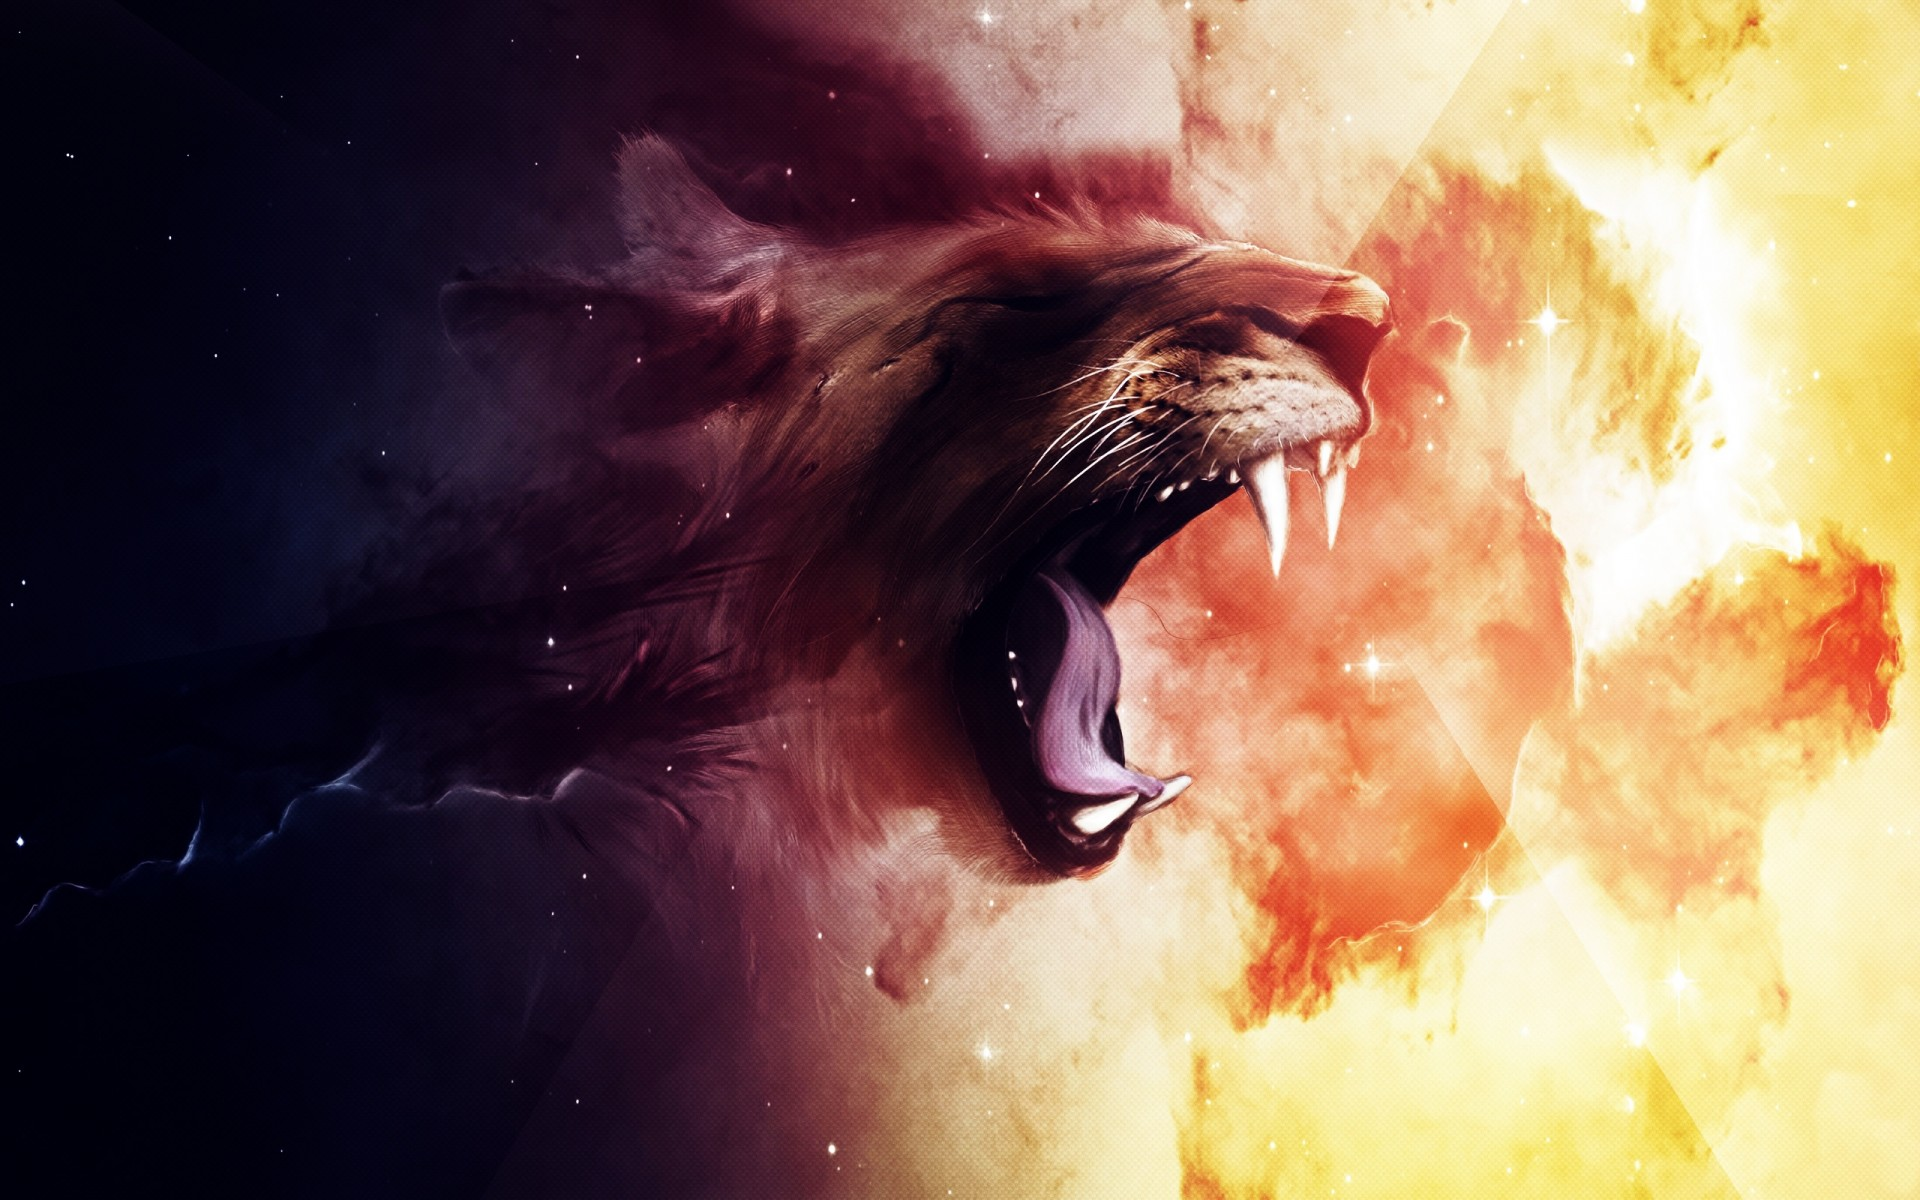 Lions Roaring Wallpaper / Hd Wallpapers  yearbook ideas 1920x1200